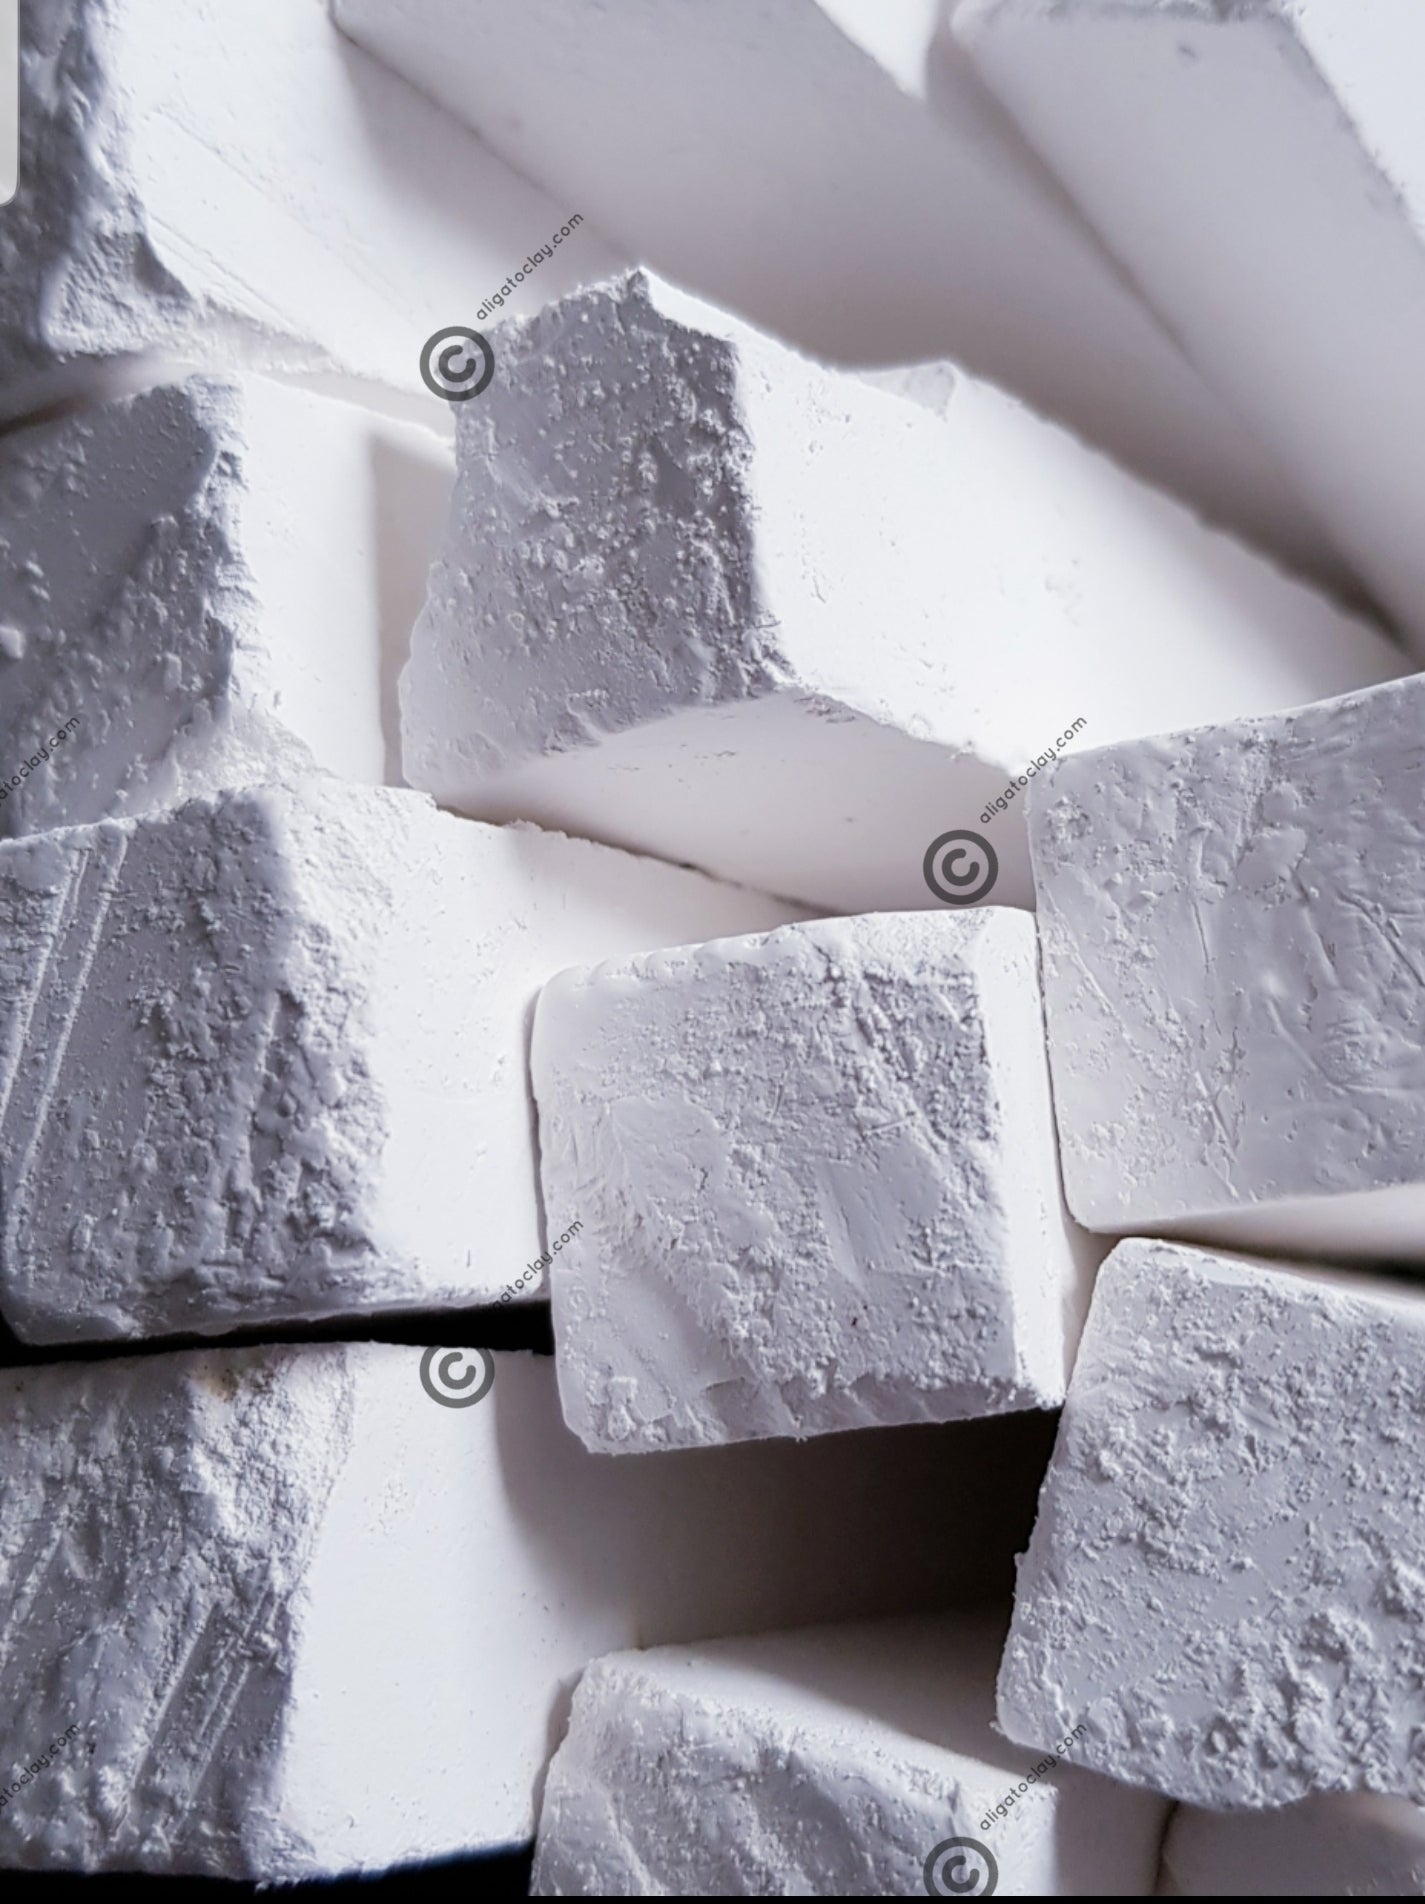 Sawn Belgorod Thick Bars Edible Chalk Russian Chalks